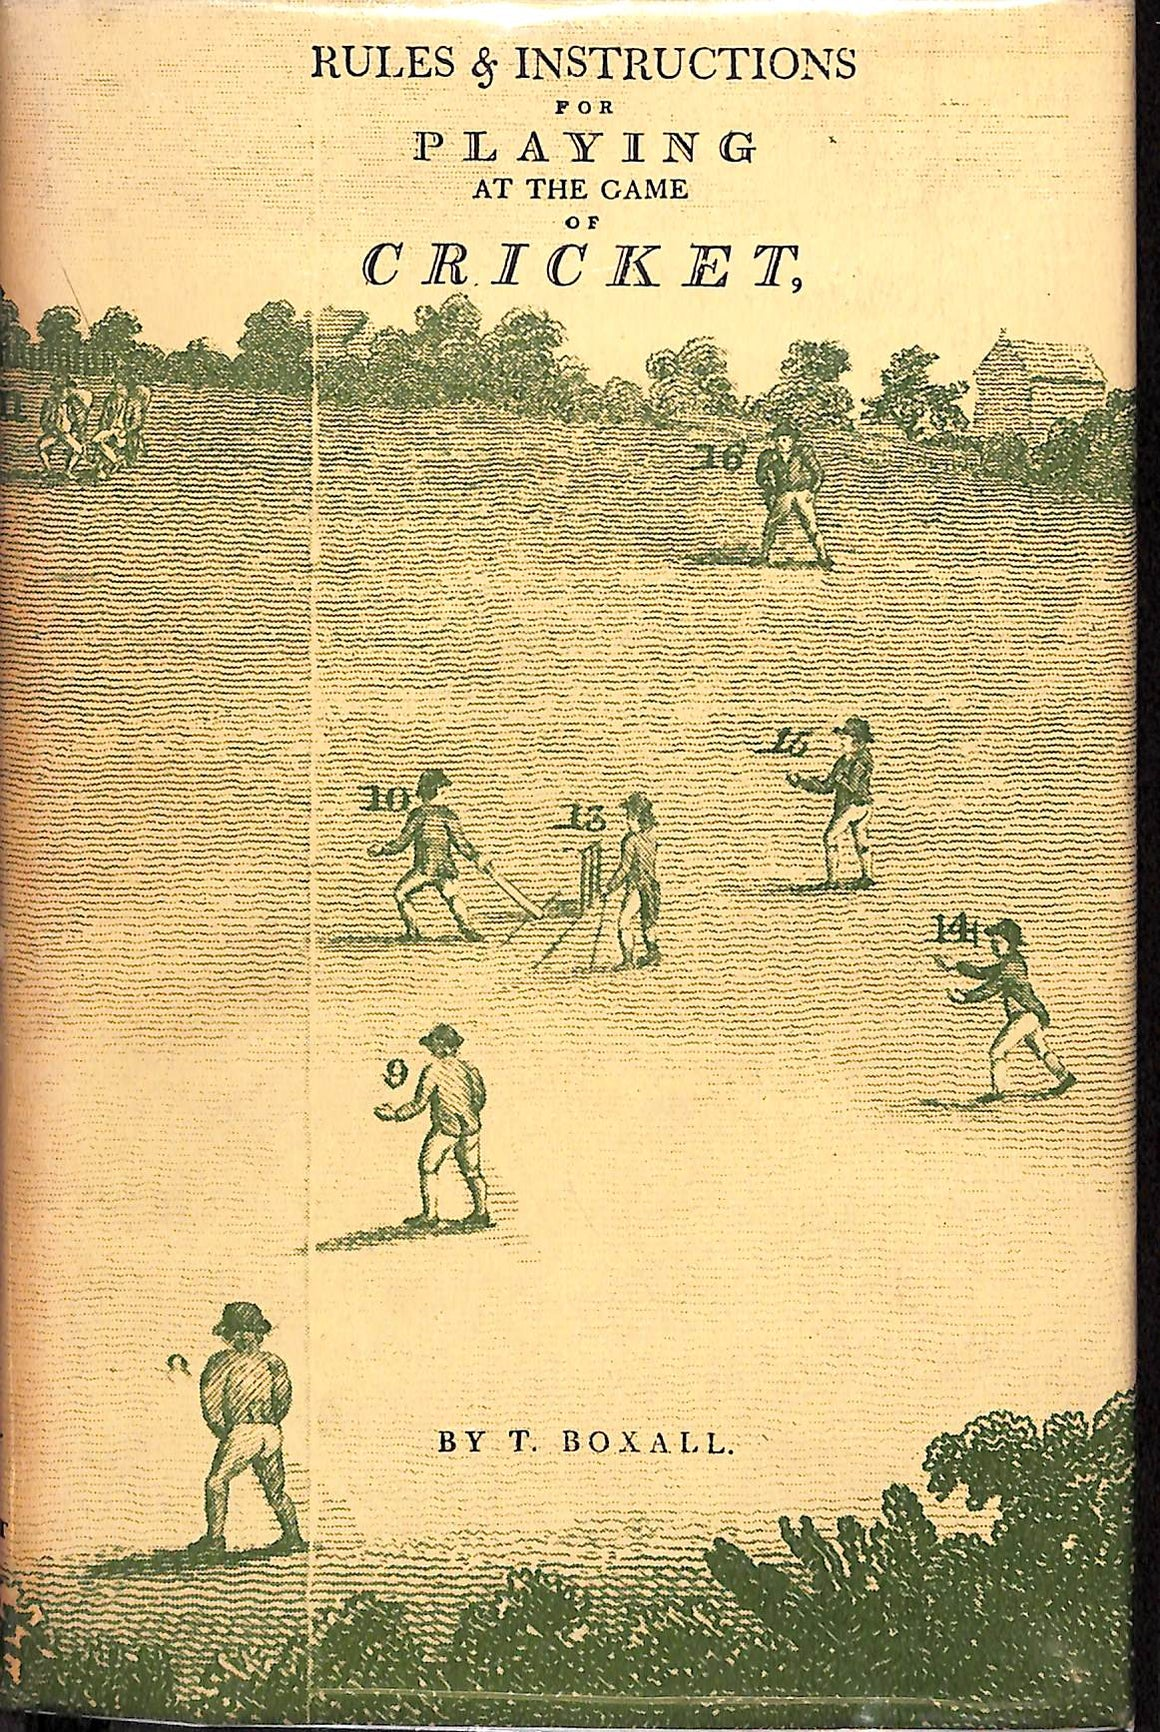 Rules & Instructions for Playing at the Game of Cricket